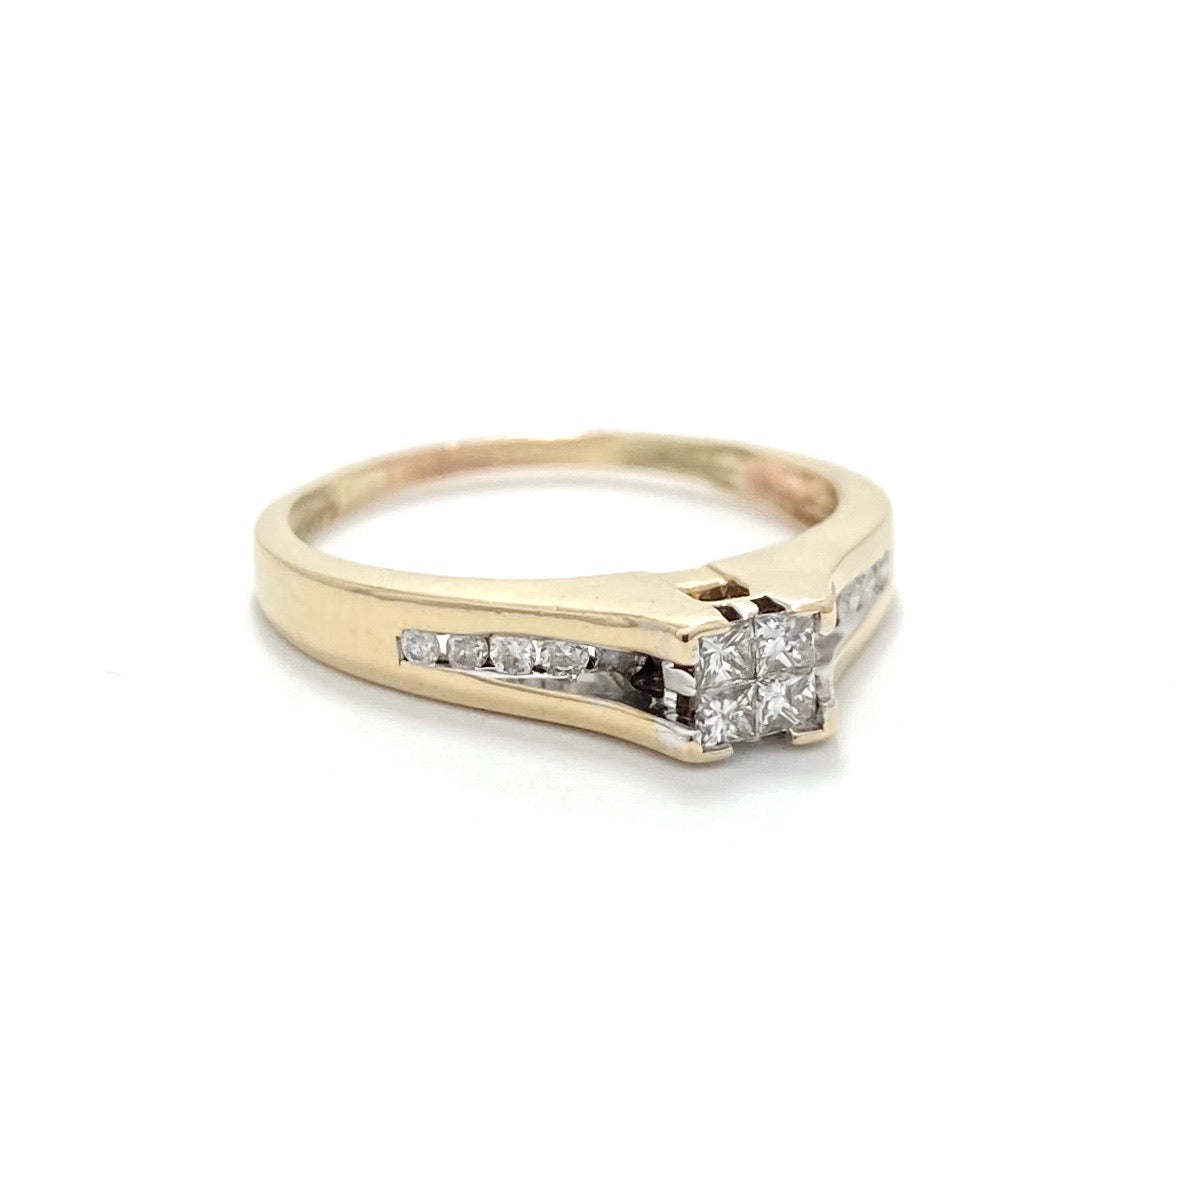 10K Yellow Gold Channel Set Diamond Engagement Ring